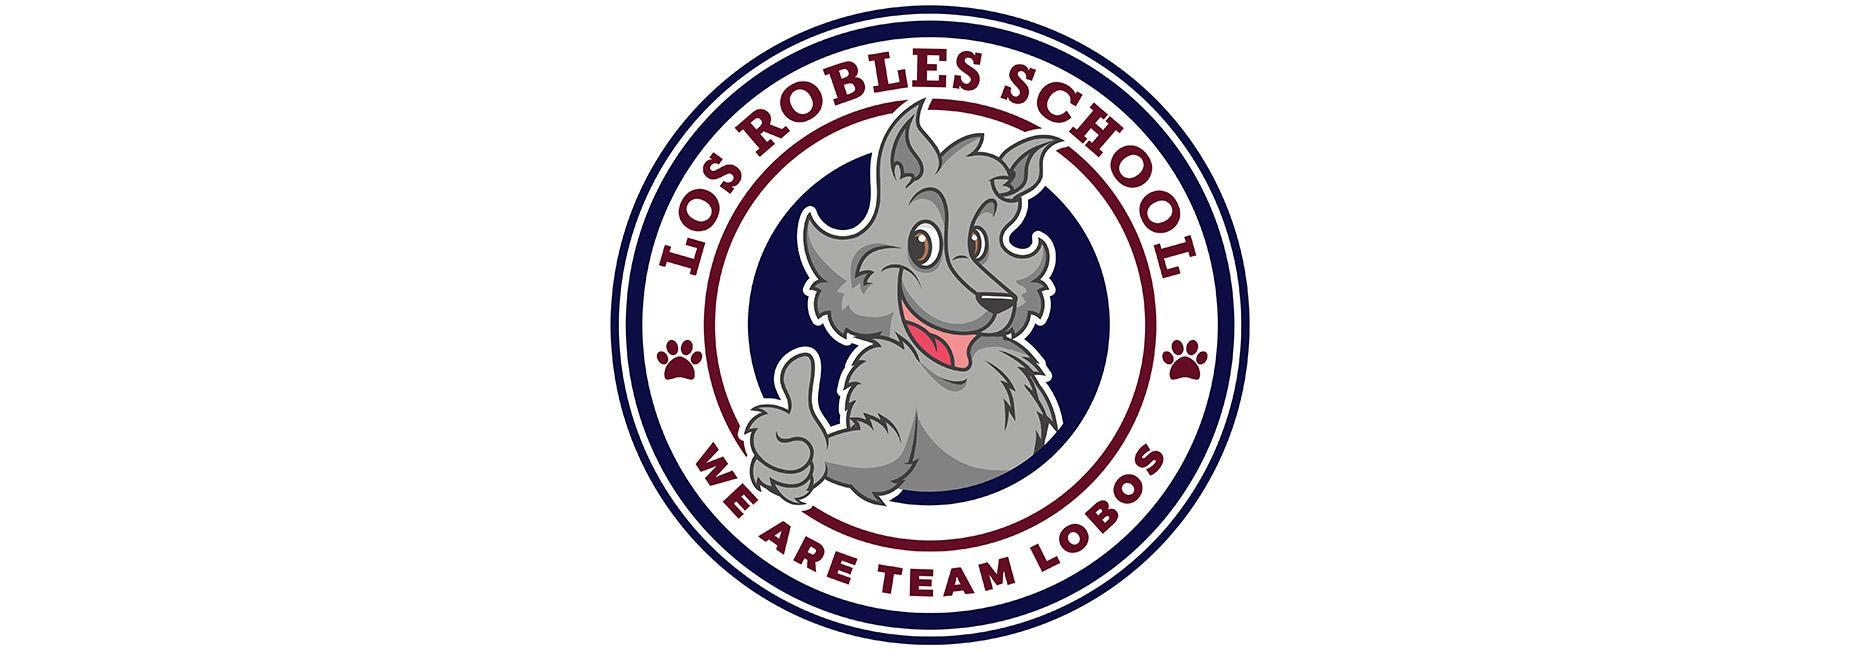 New Los Robles Logo